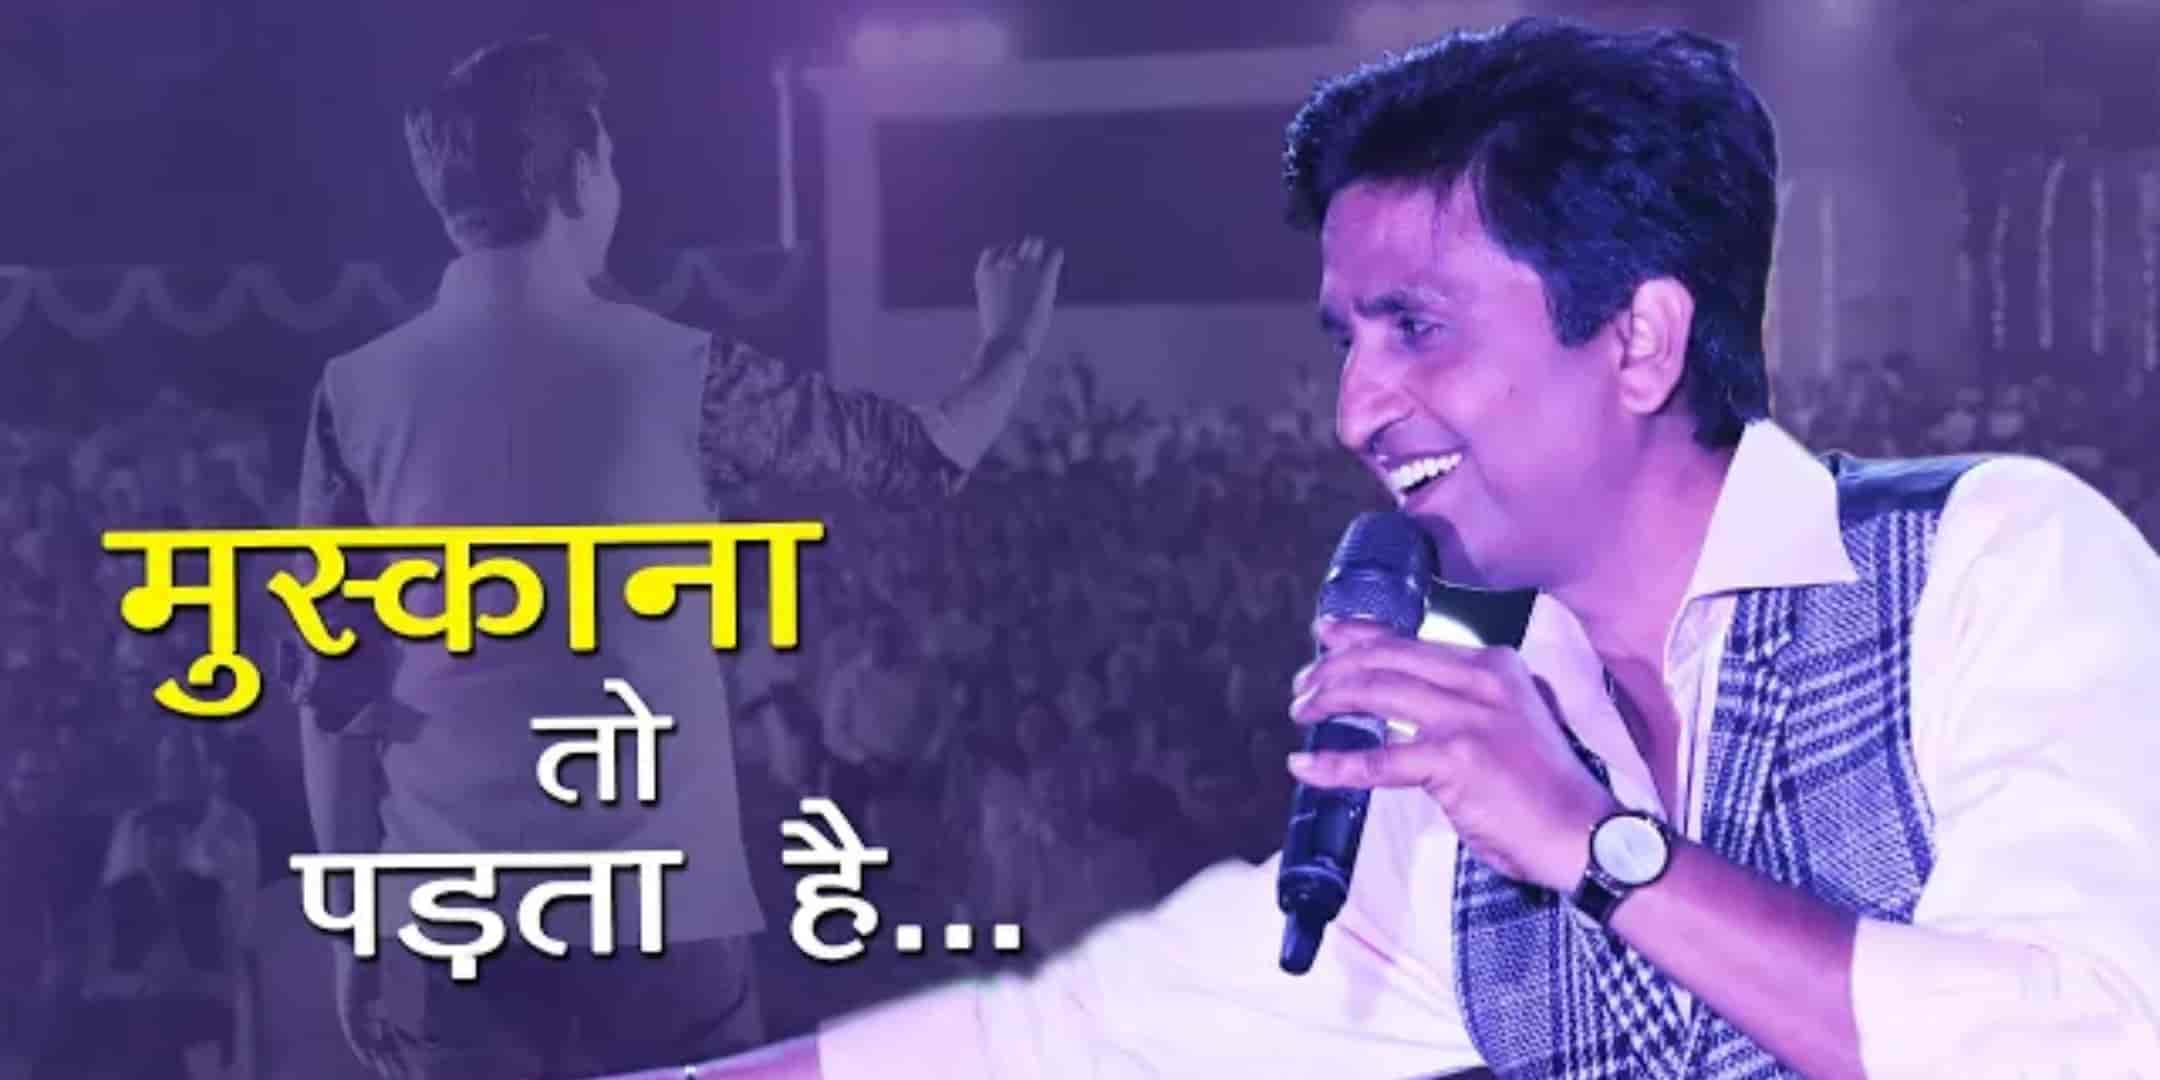 This beautiful Shayari 'Muskaana To Padta Hai' is written by the famous young poet Dr. Kumar Vishwas.